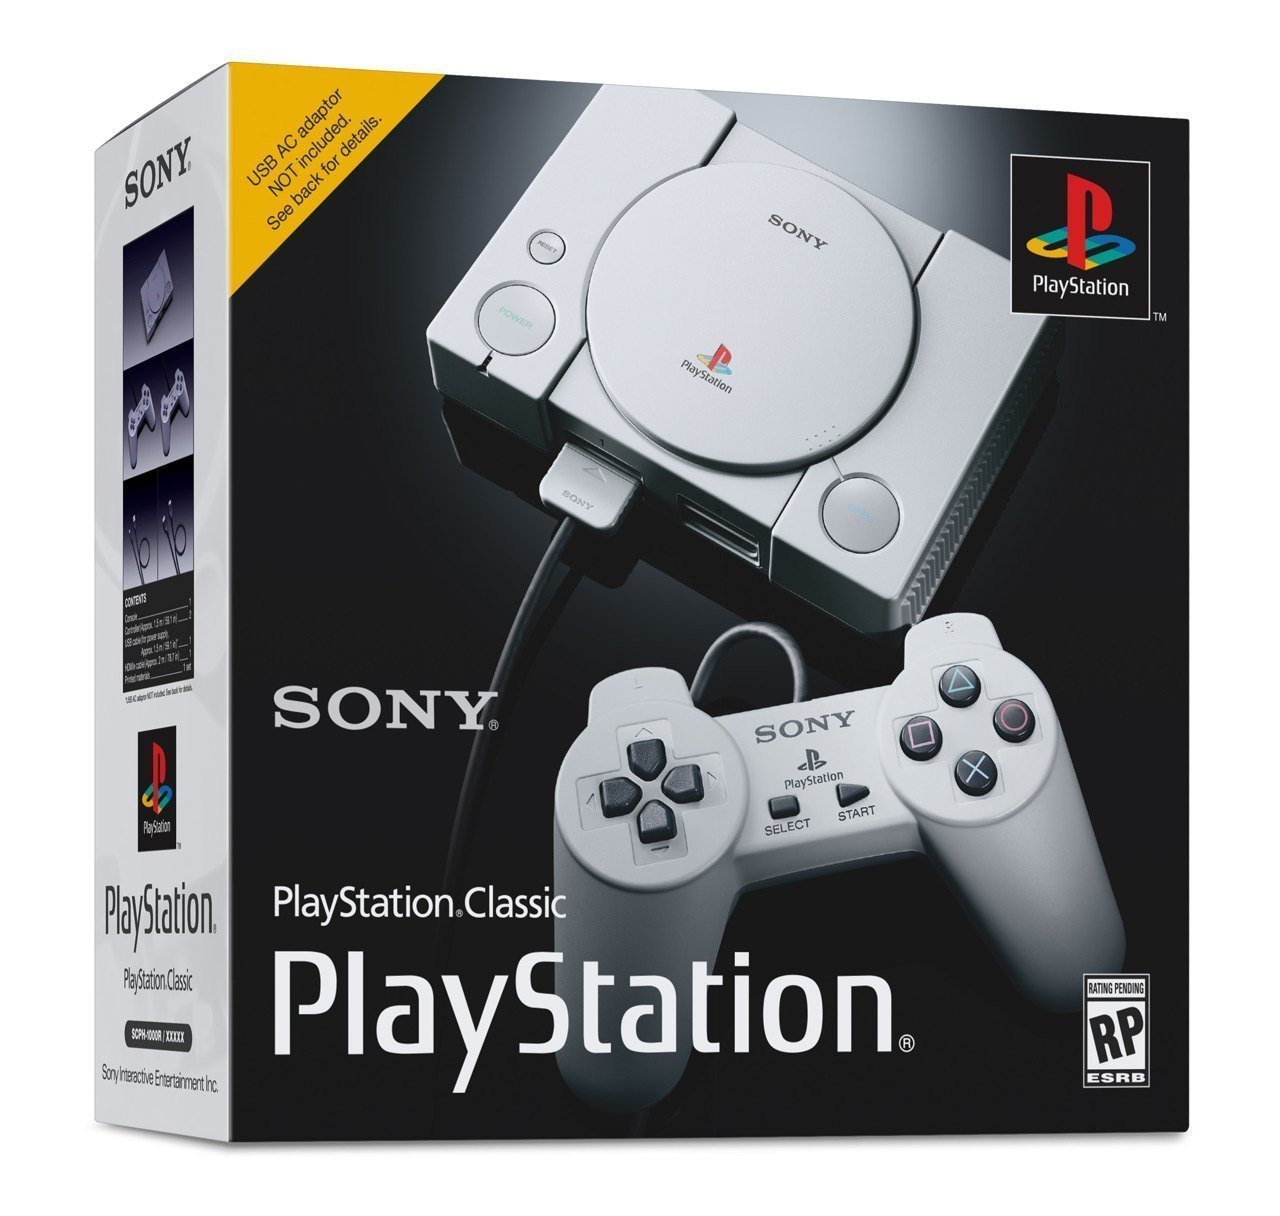 Sony Announces PlayStation Classic Featuring 20 Pre-Loaded Games